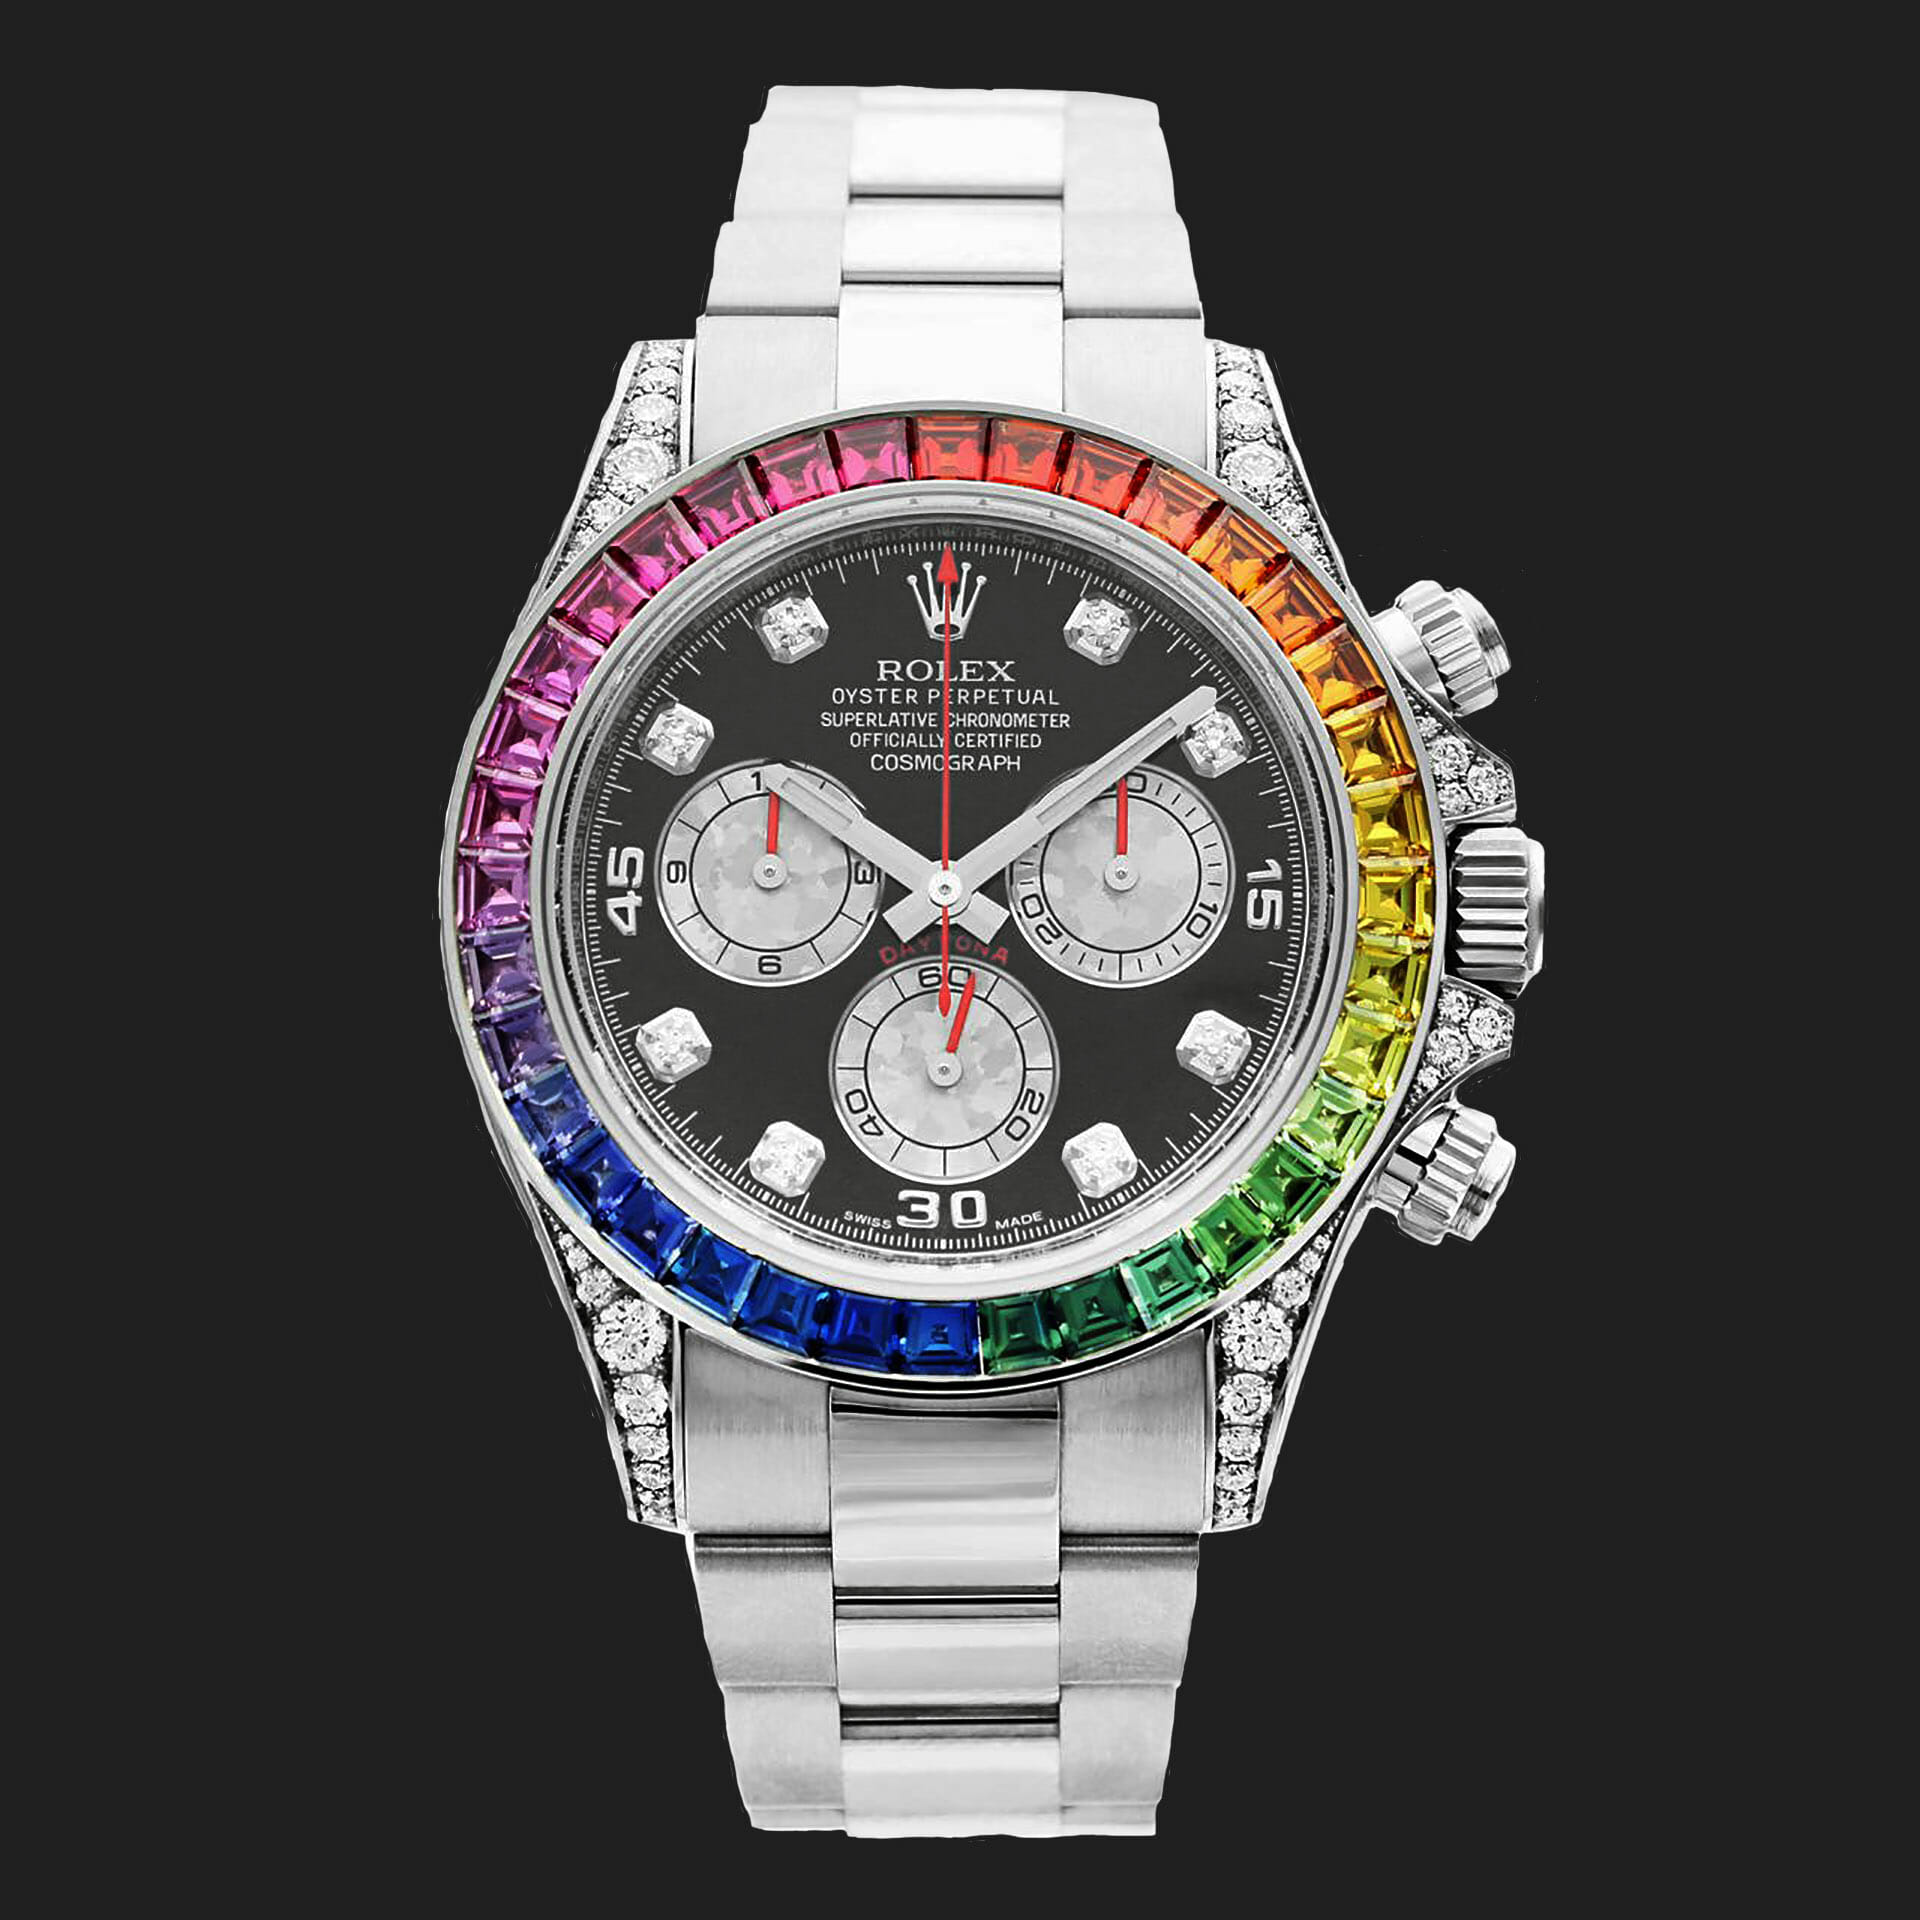 Rolex Oyster Perpetual Cosmograph Daytona Rainbow White Gold 2013